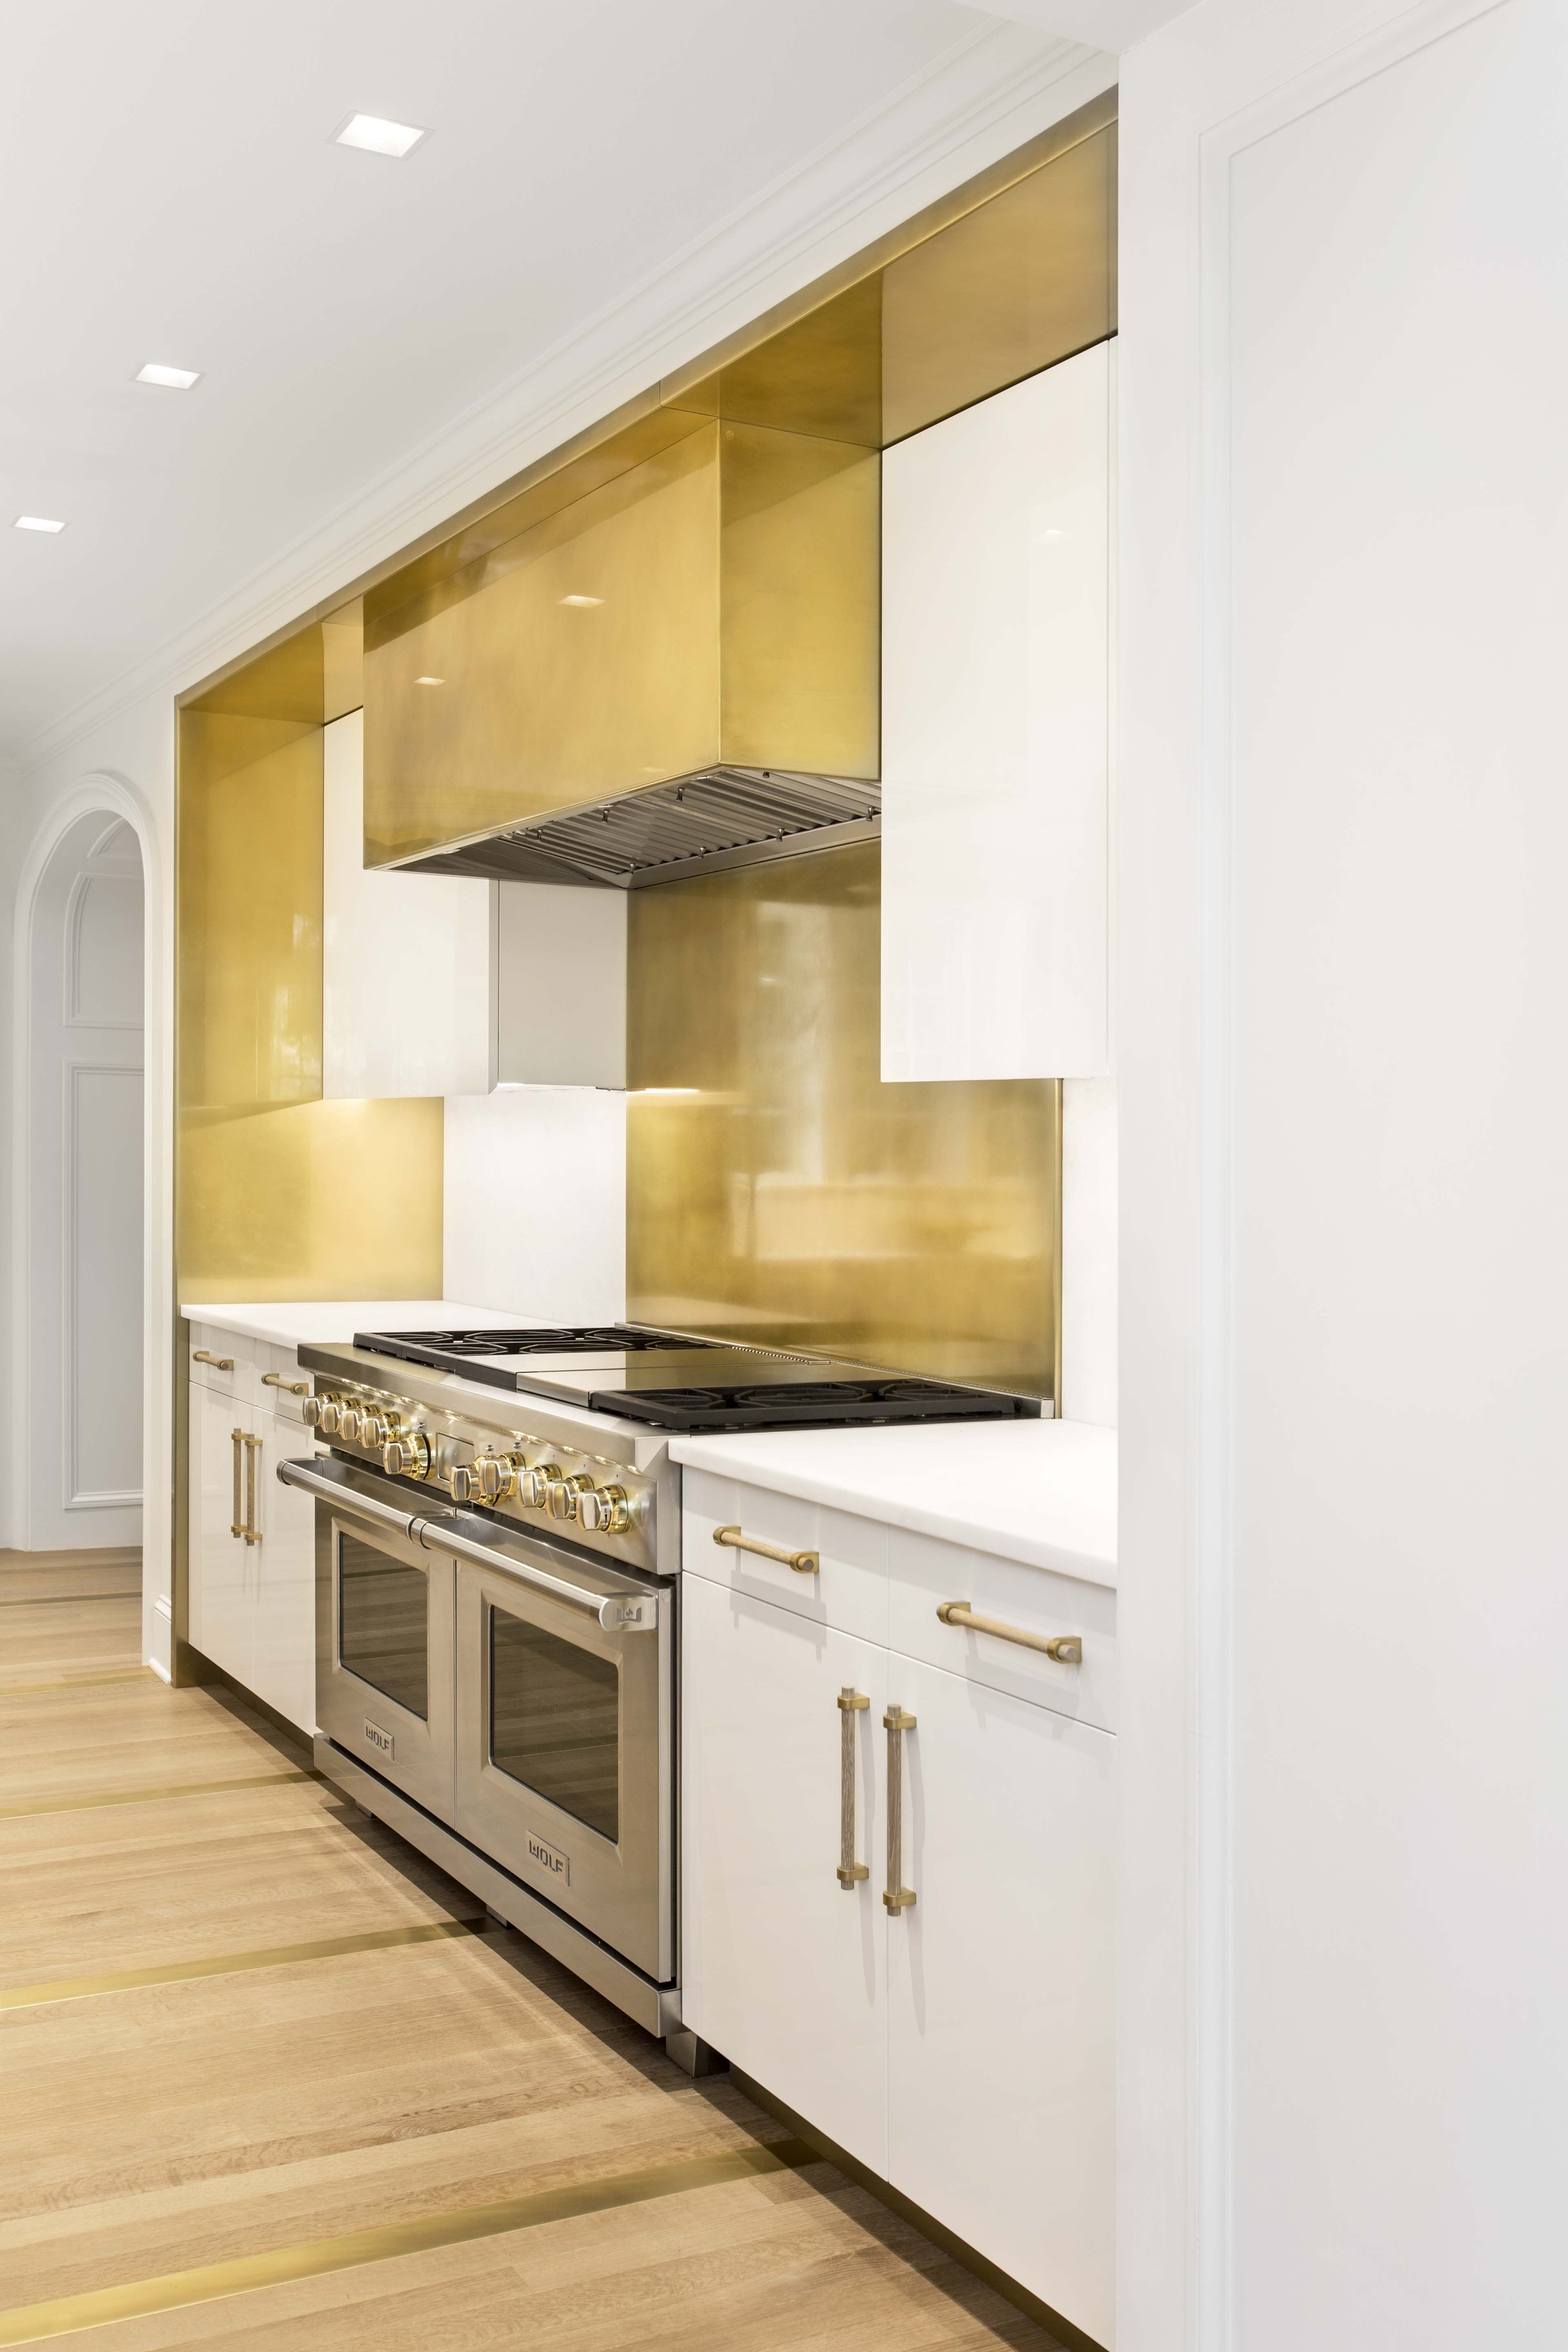 A Brass Kitchen Back Splash Allows For A Clean Contrast With The Polished Lacquer White Oa Kitchen Cabinets And Backsplash Brass Kitchen Kitchen Remodel Layout